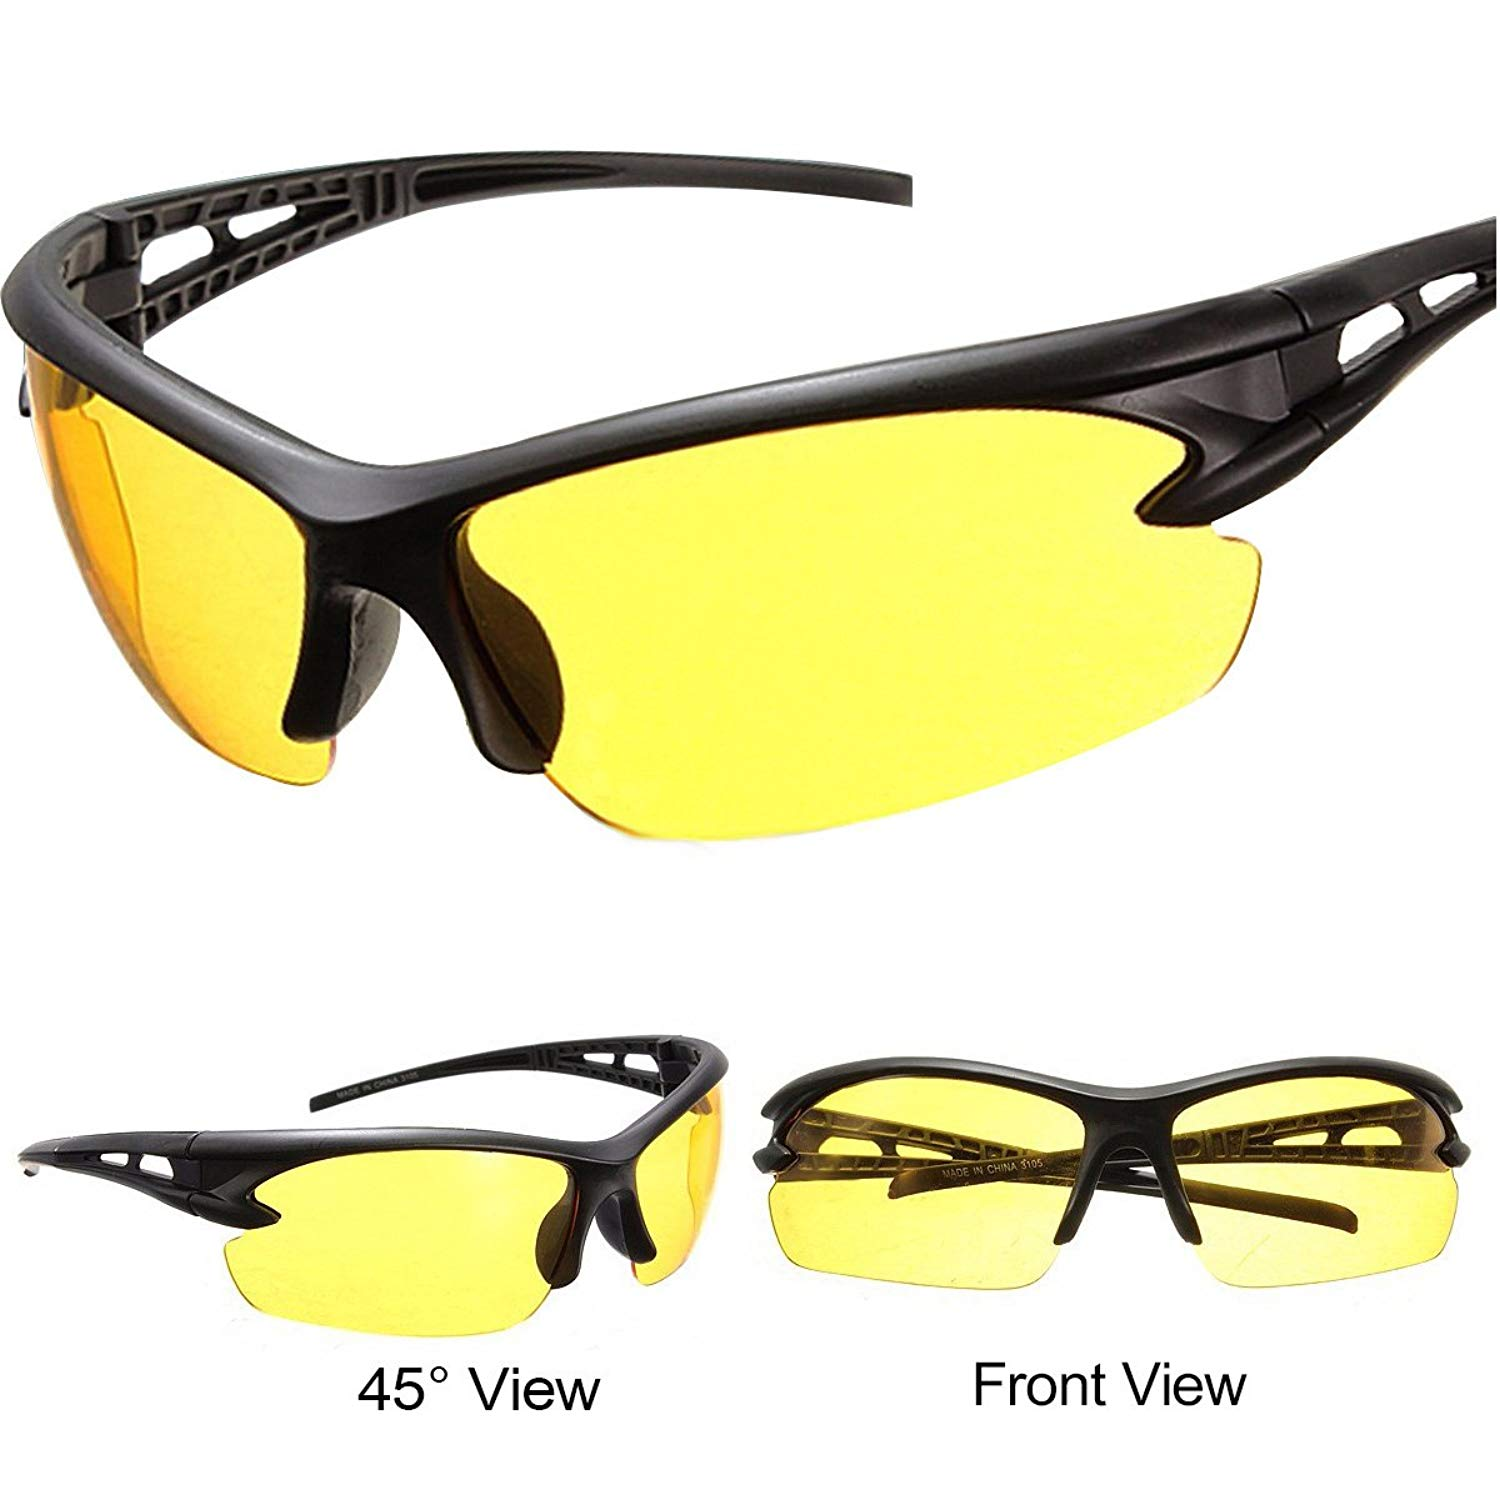 838e8fda66f4 Get Quotations · Night Driving Glasses for Men and Women Safety Sunglasses  with HD Yellow Lens Plastic Frame Anti